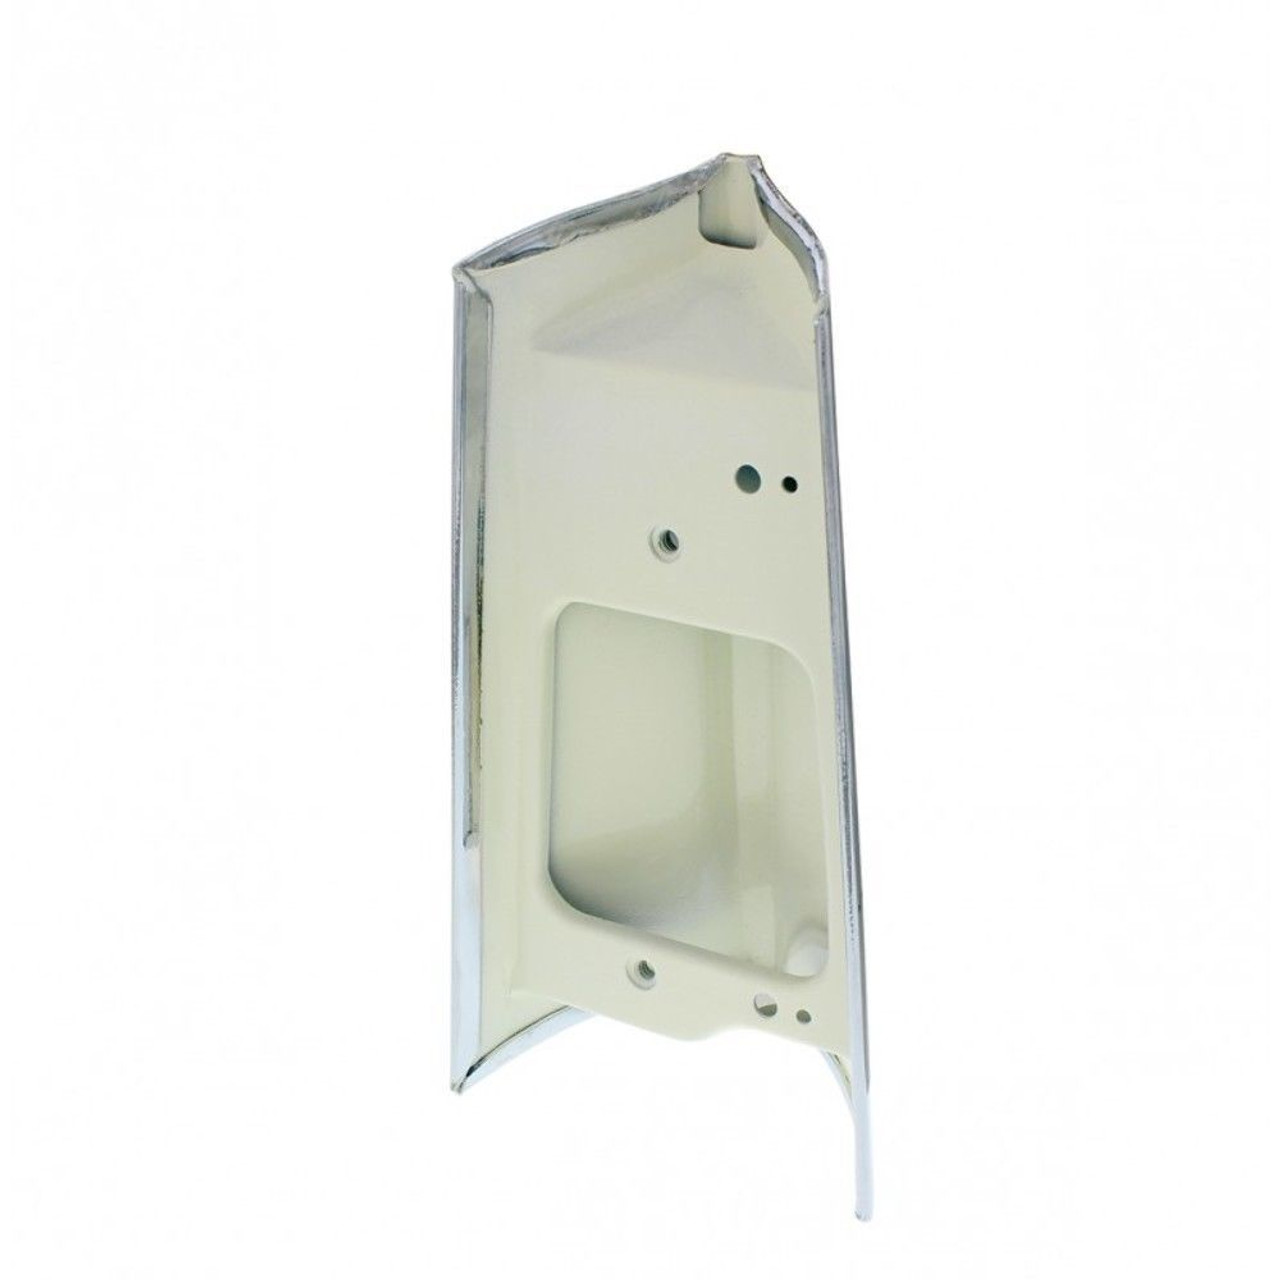 1957 Chevy Bel Air / 120 / 150 Quarter Panel Gas Tank Door, Fits Lefthand Side